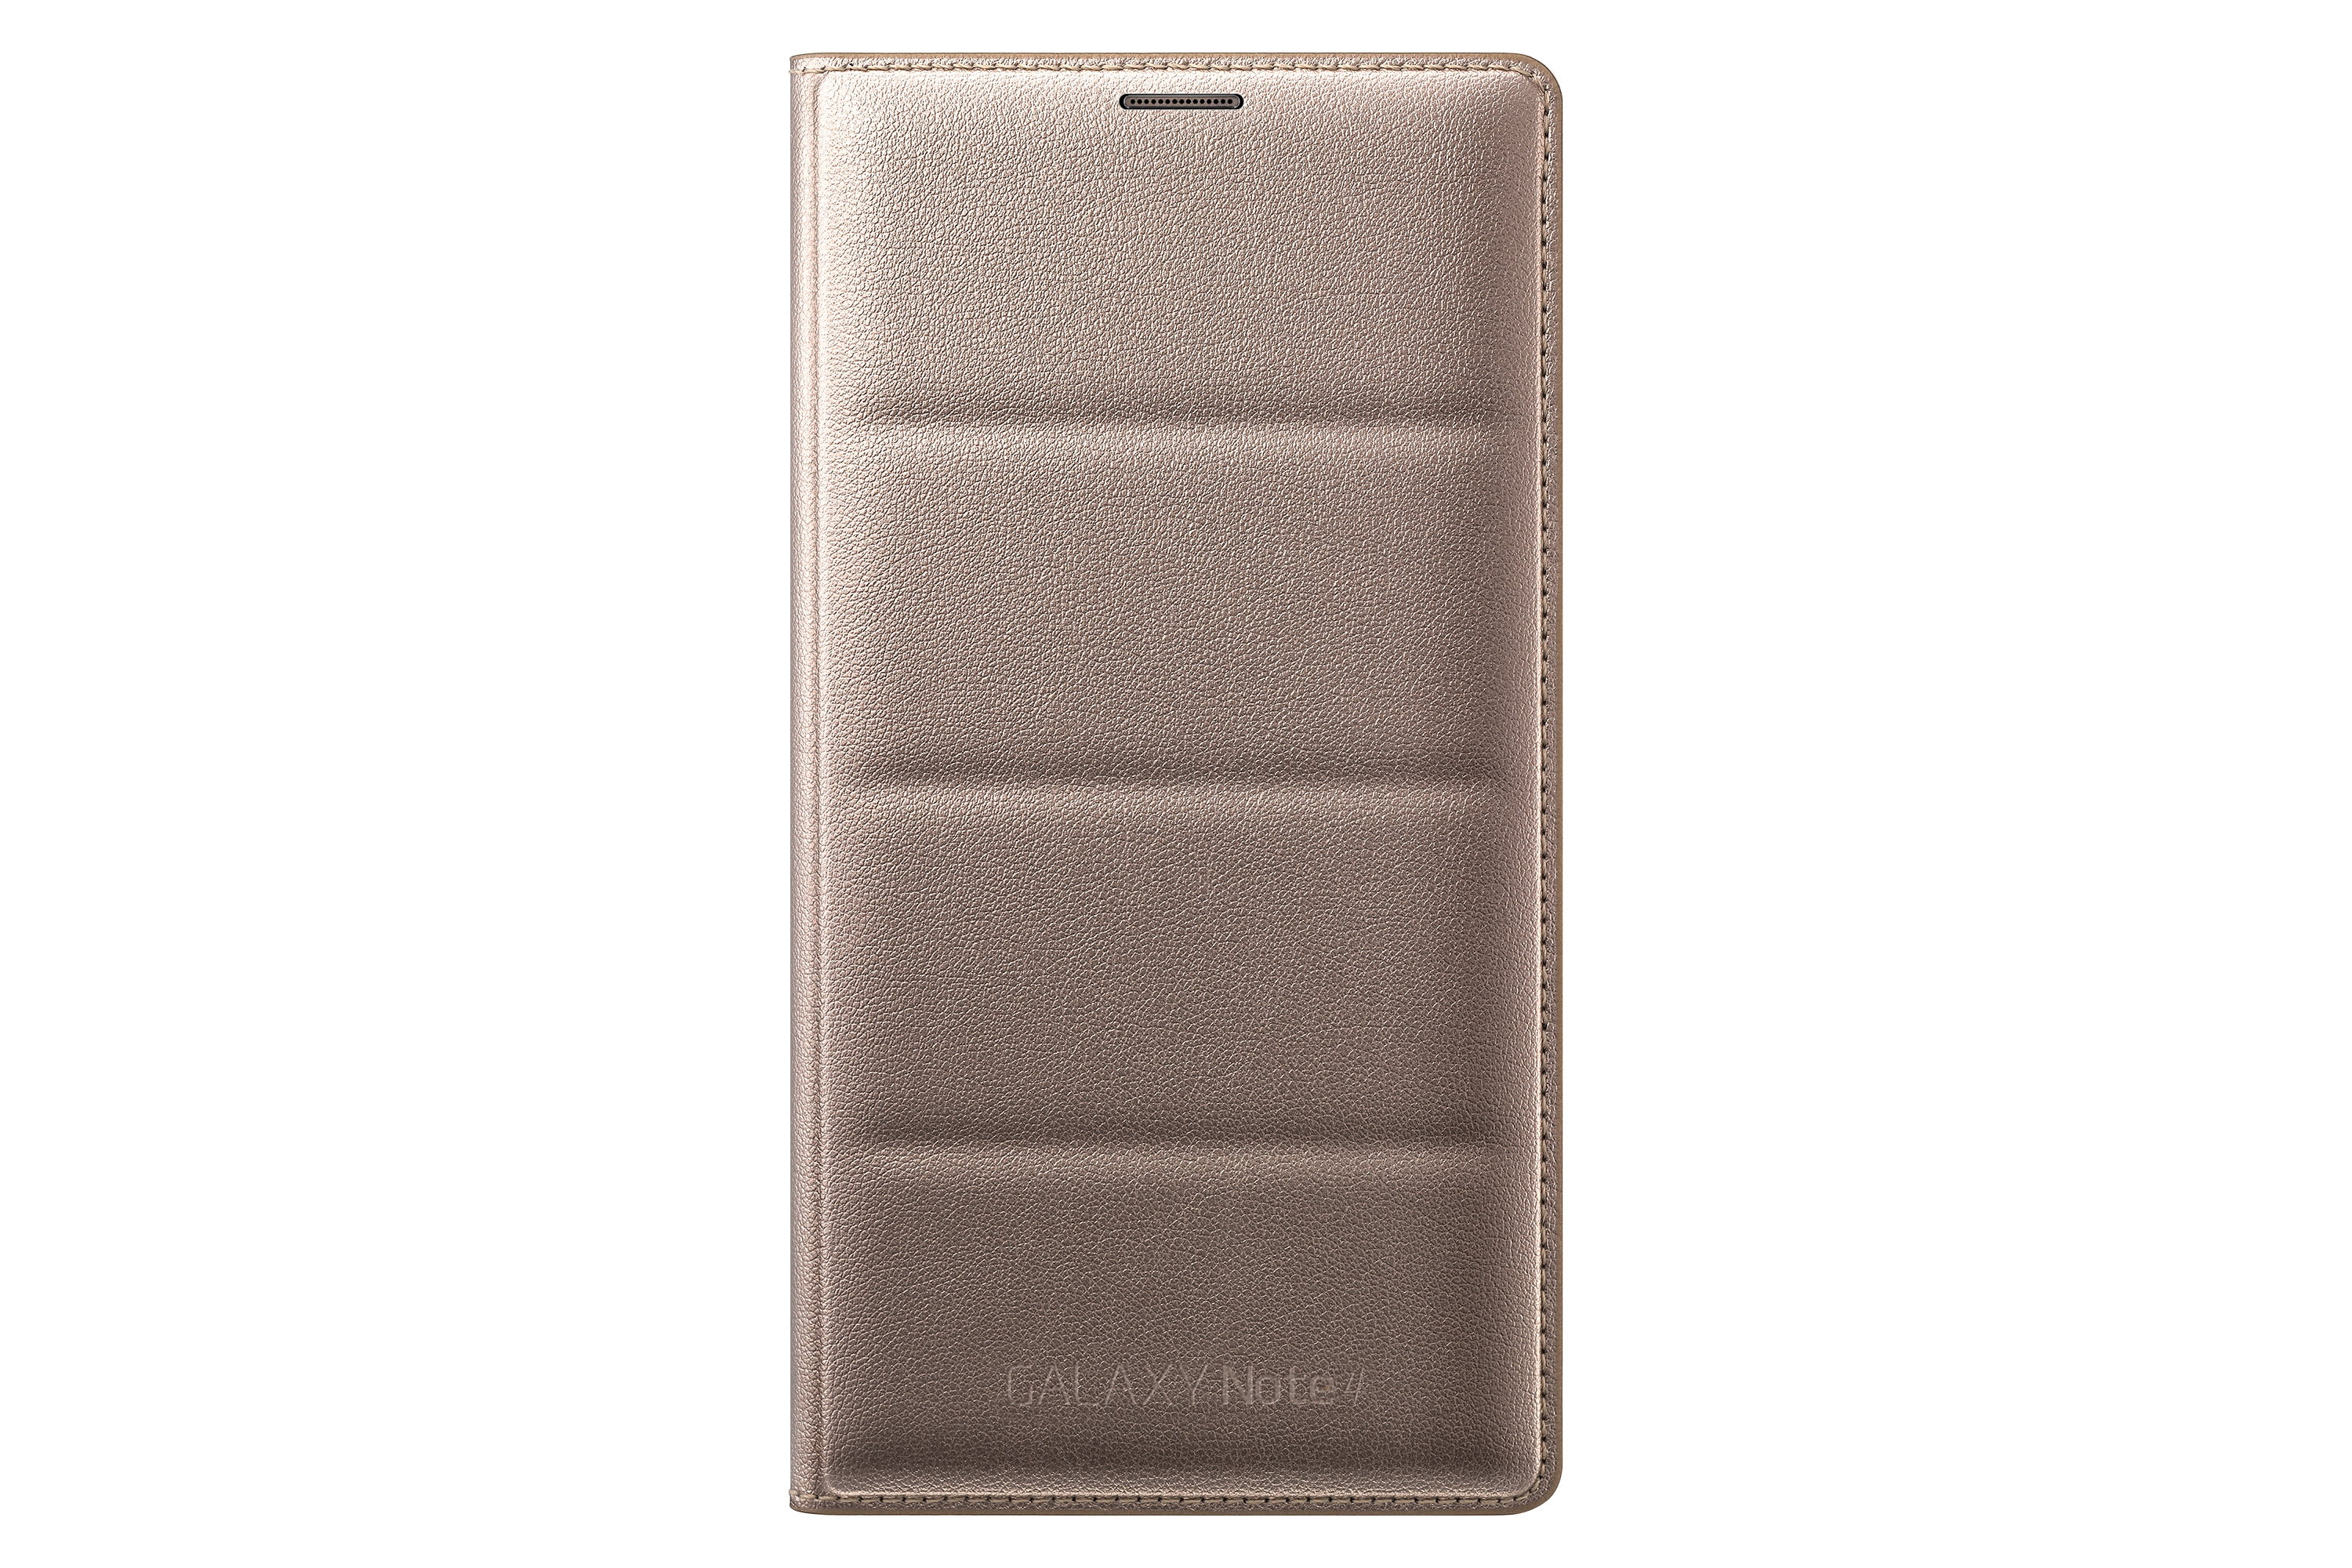 Flip Wallet - Galaxy Note 4